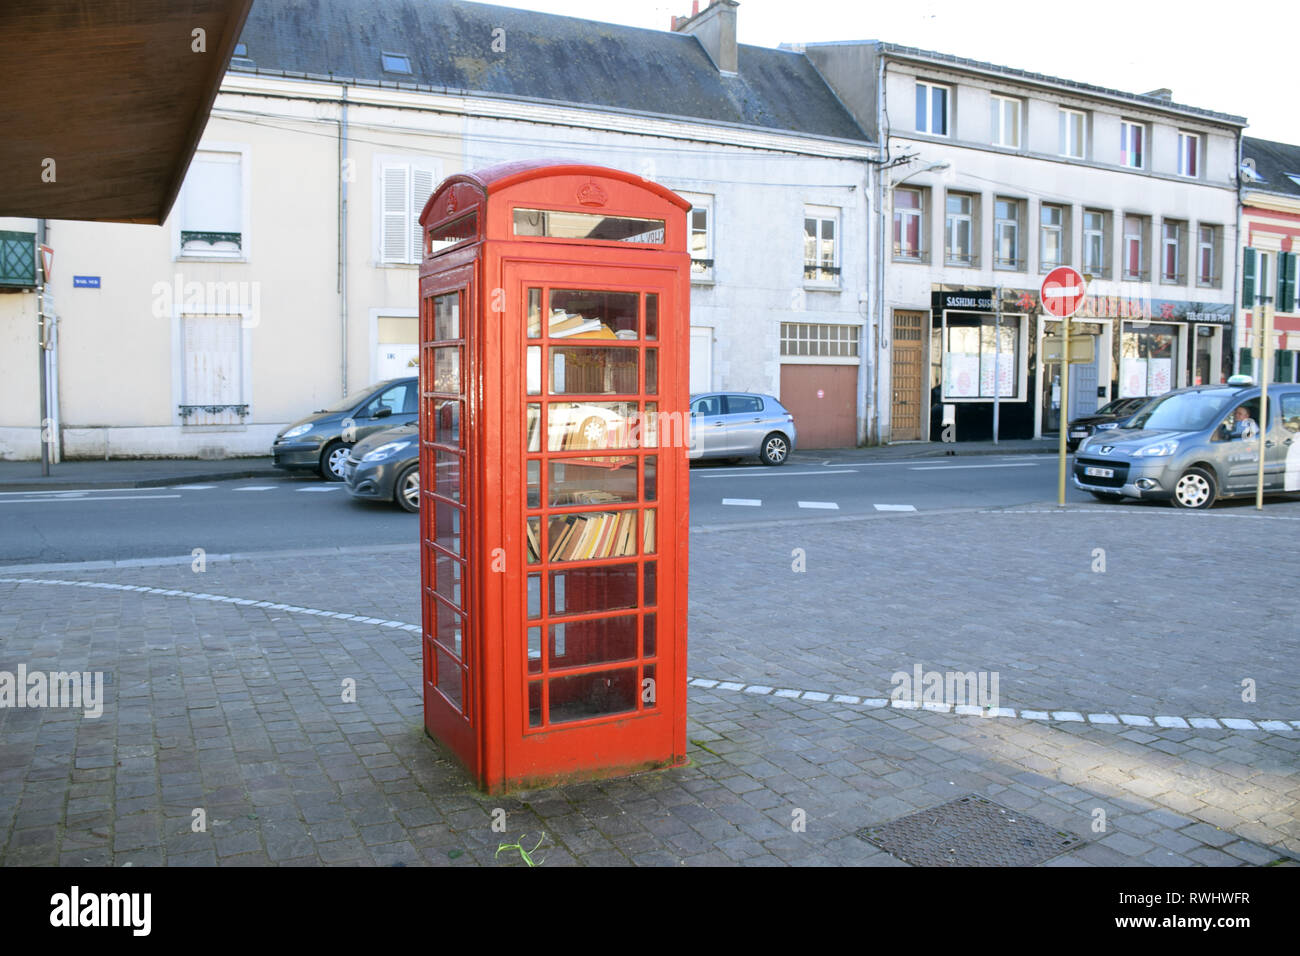 Pithiviers in France is twinned with Ashby-de-la-Zouch in England. Donated red telephone box converted into a book swap library. Feb 2019 - Stock Image